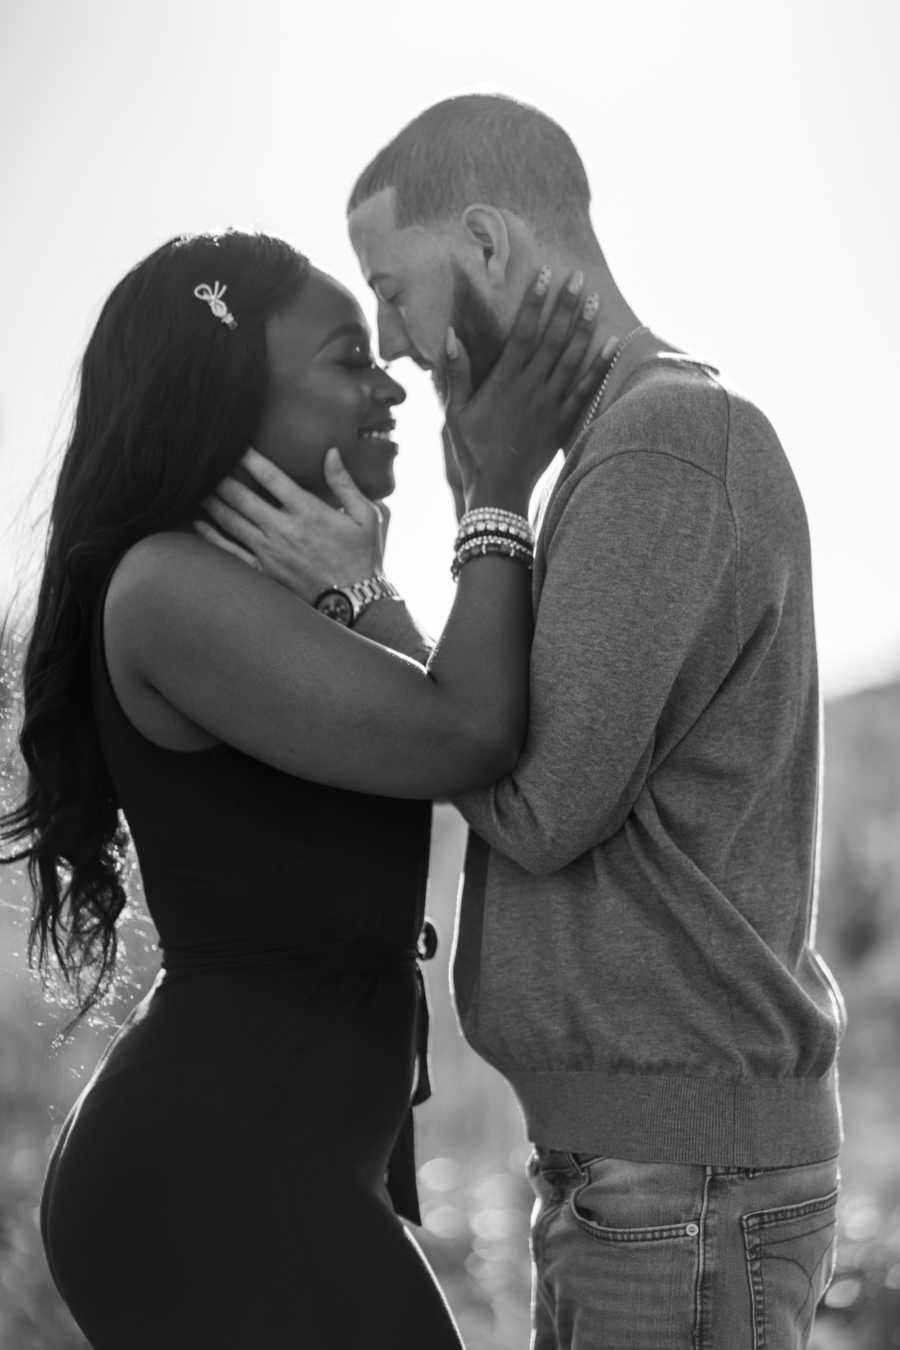 Young interracial couple share sweet, intimate moment during photoshoot